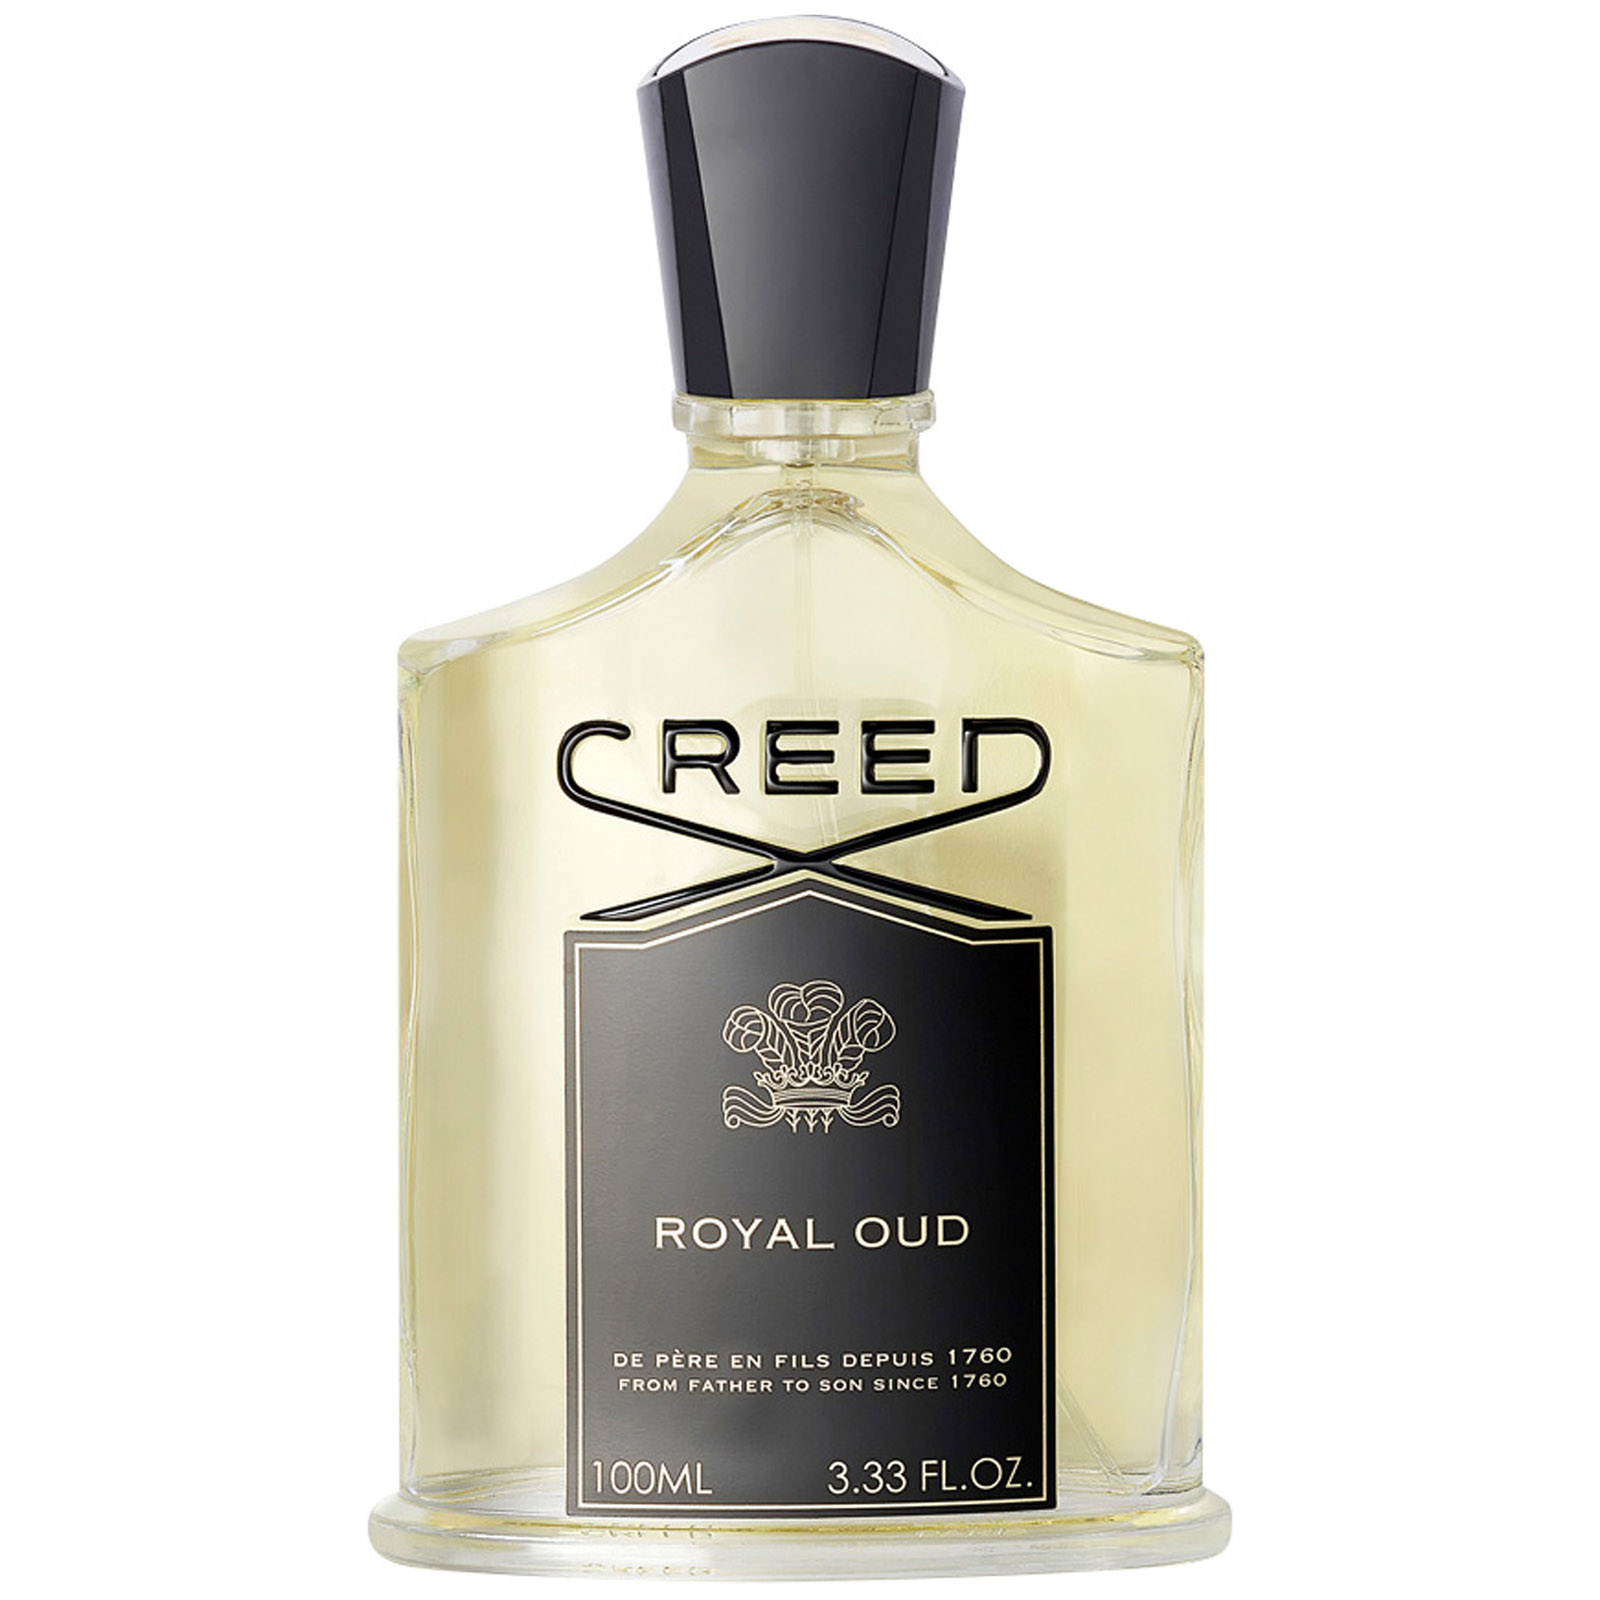 Creed Royal Oud Perfume Eau De Parfum 100 ml In White